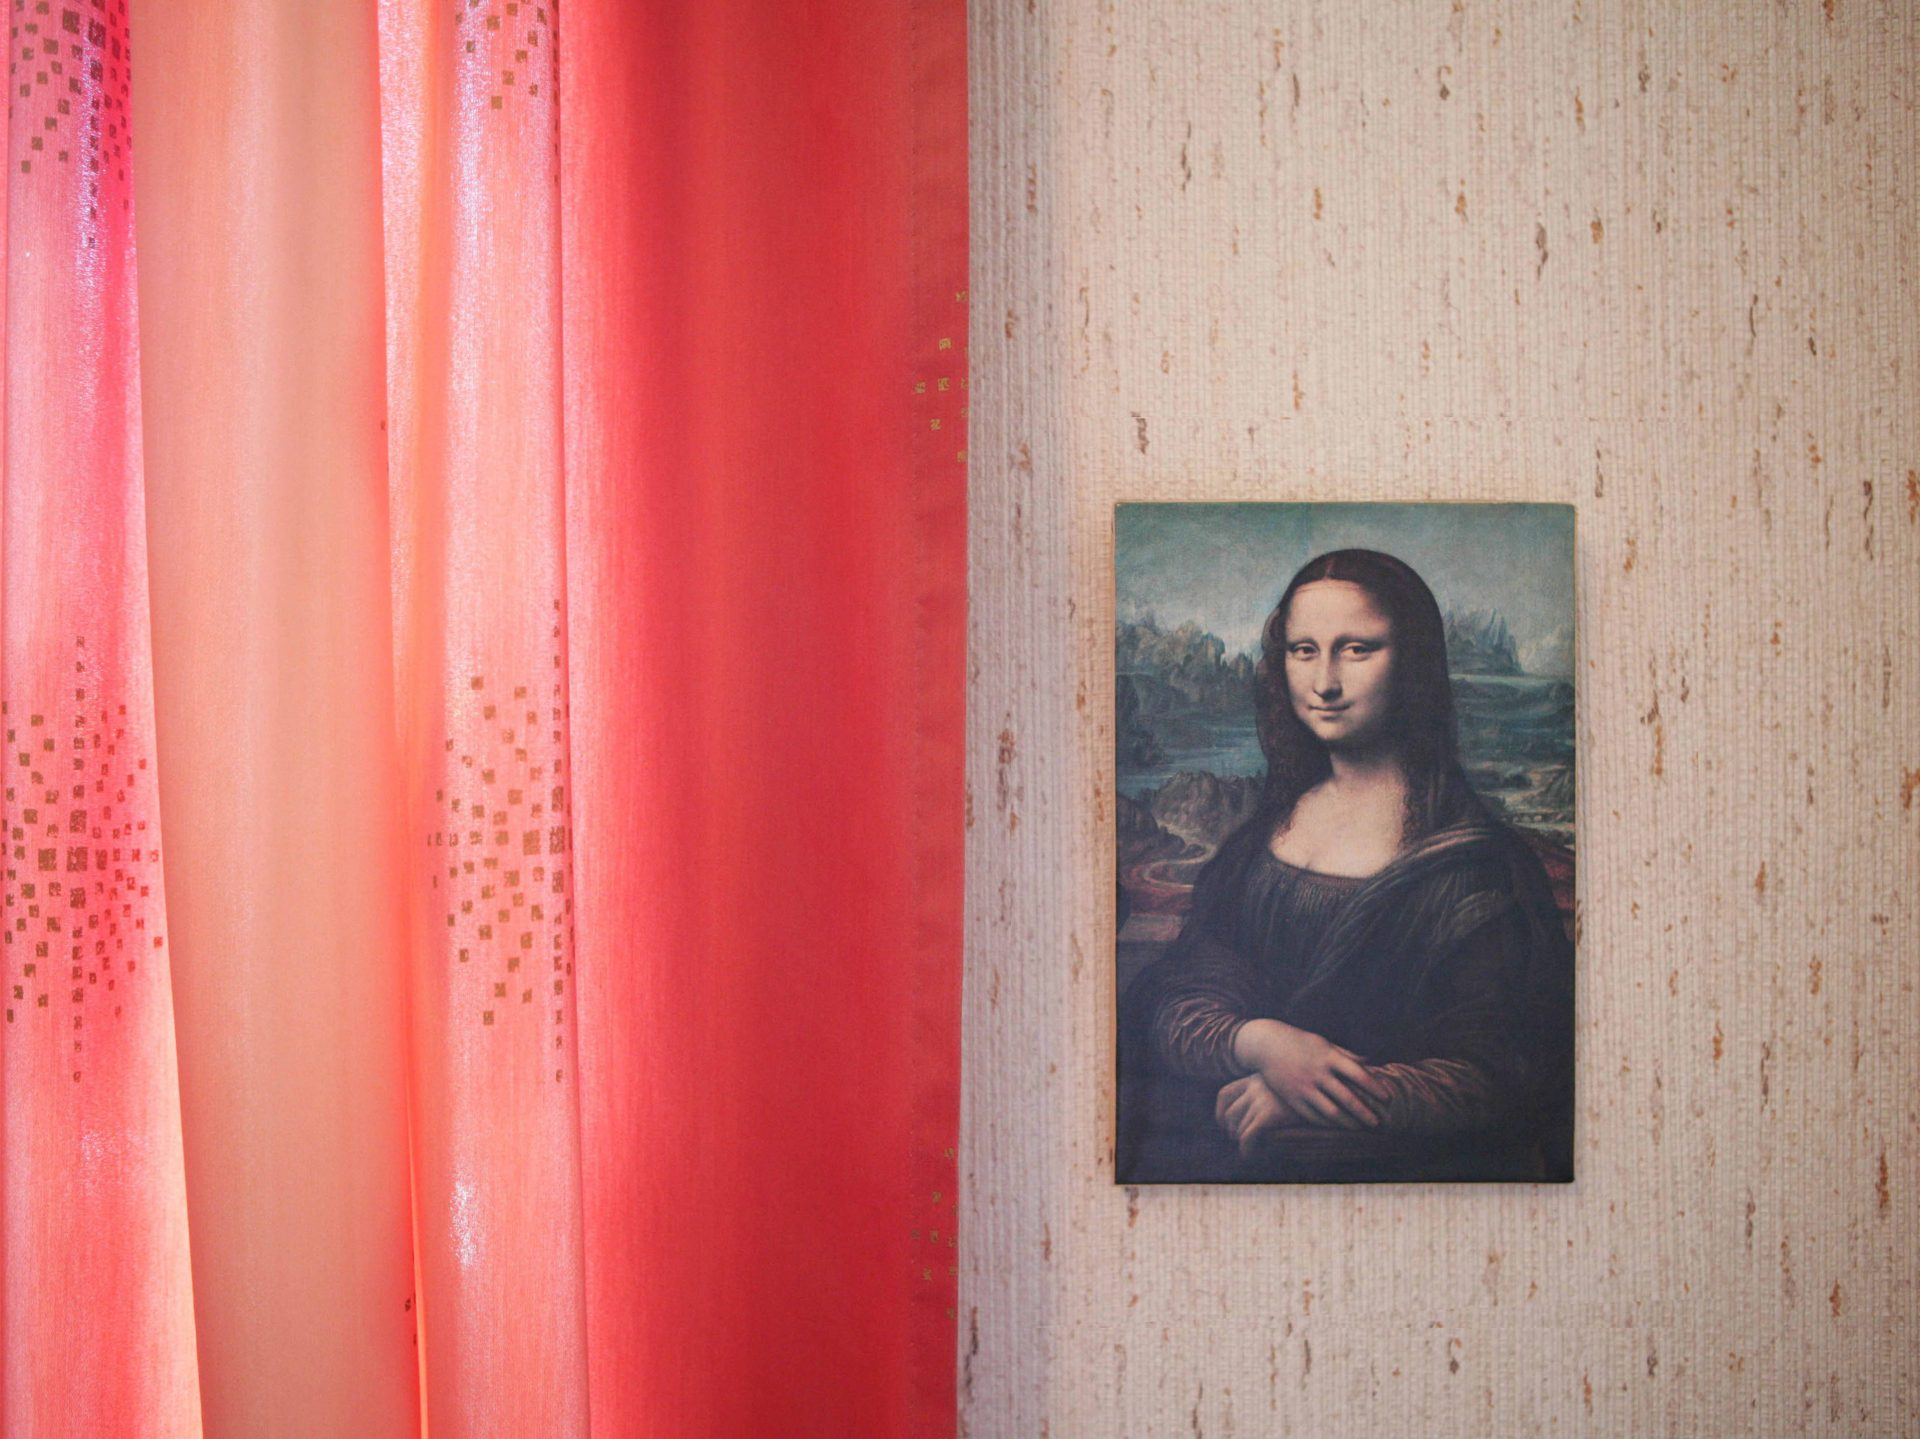 Shaw & Shaw pPhotography Mona Lisa painting on a wall with red curtains – Shaw and Shaw Advertising photographers photographer photography